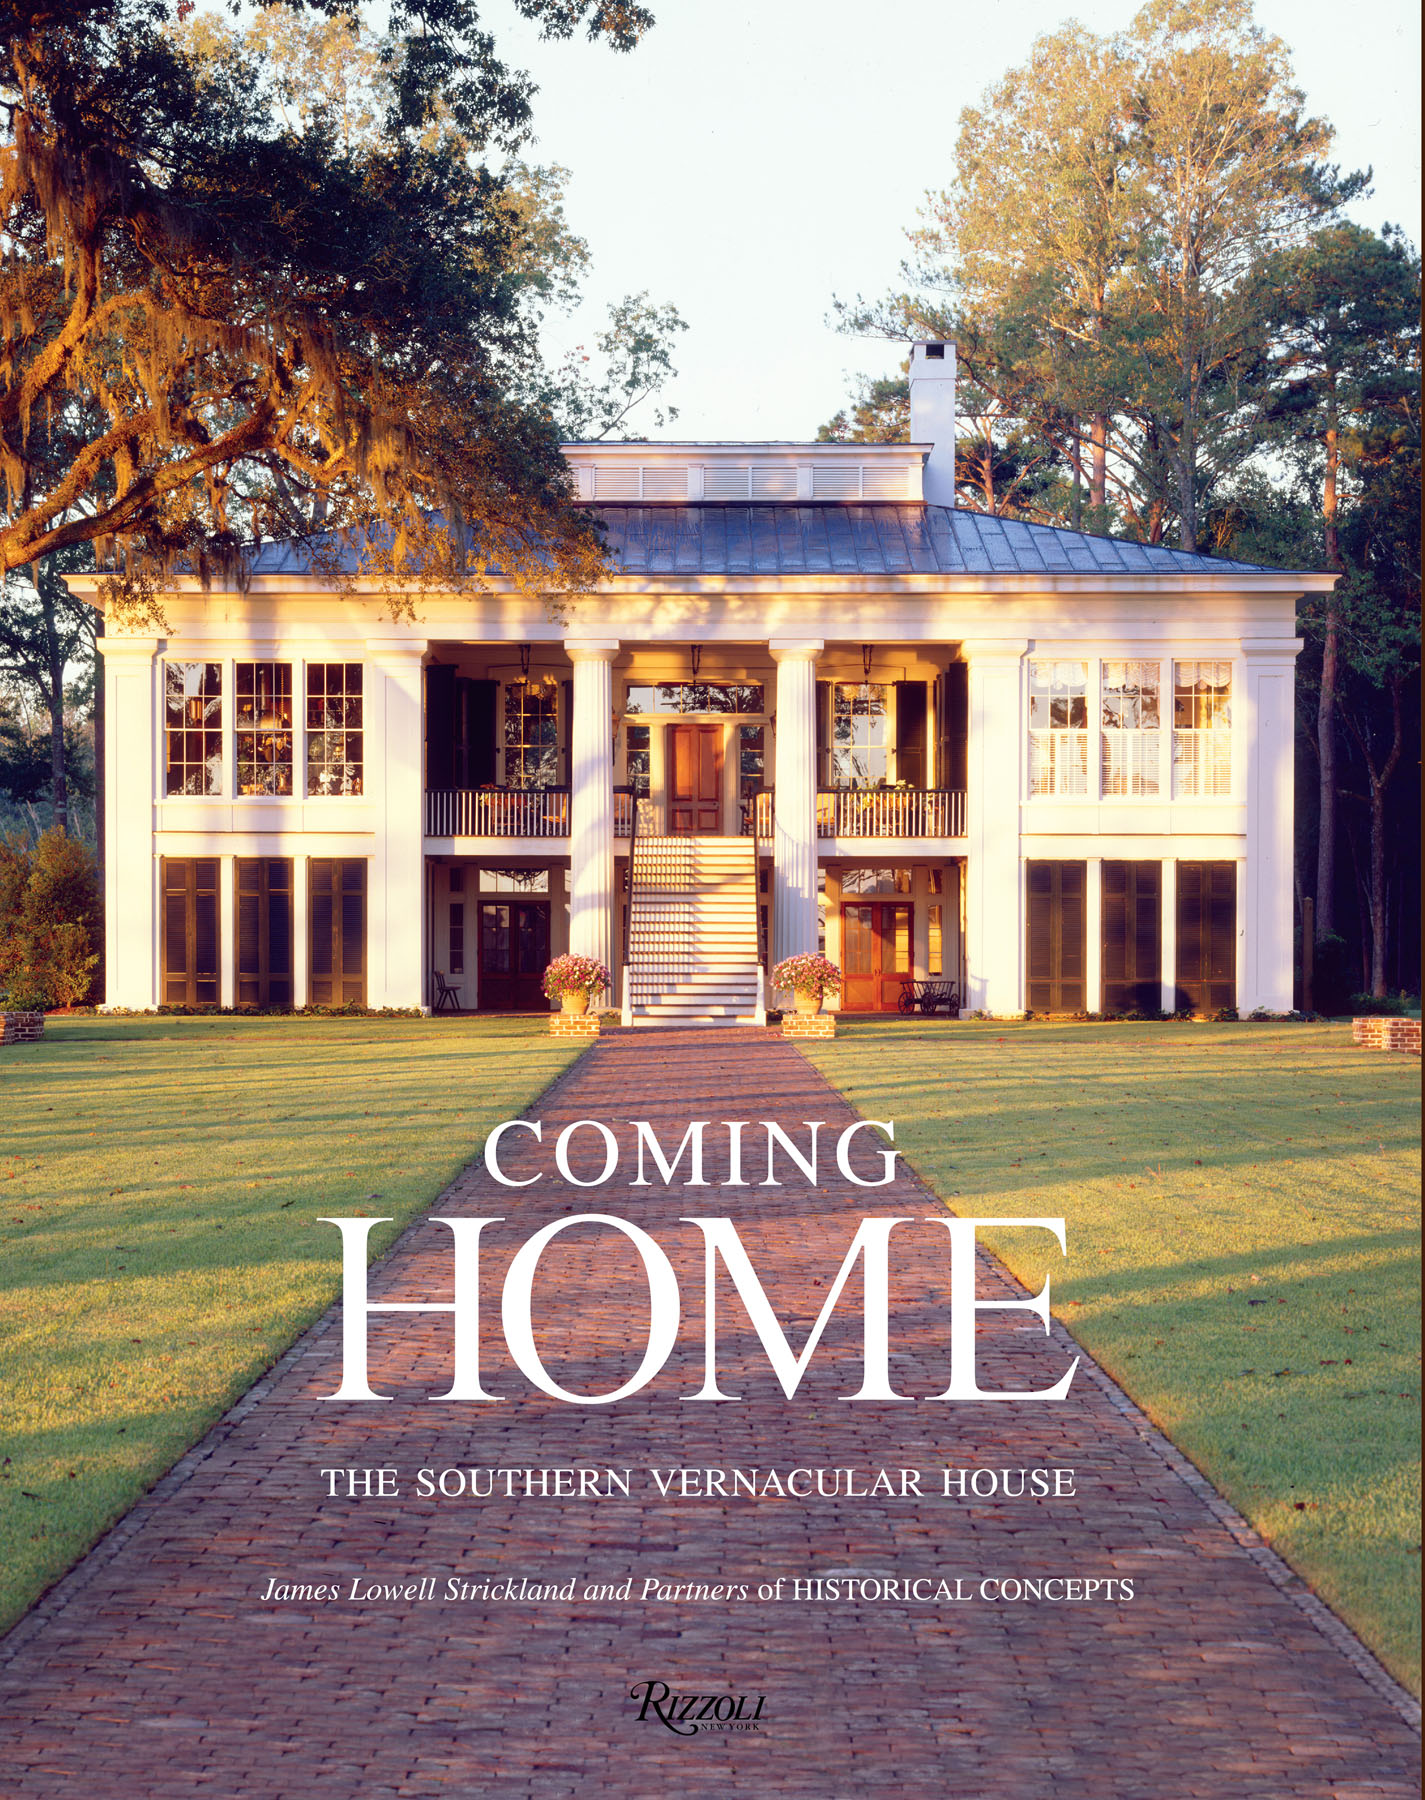 COMING HOME COVER low res file